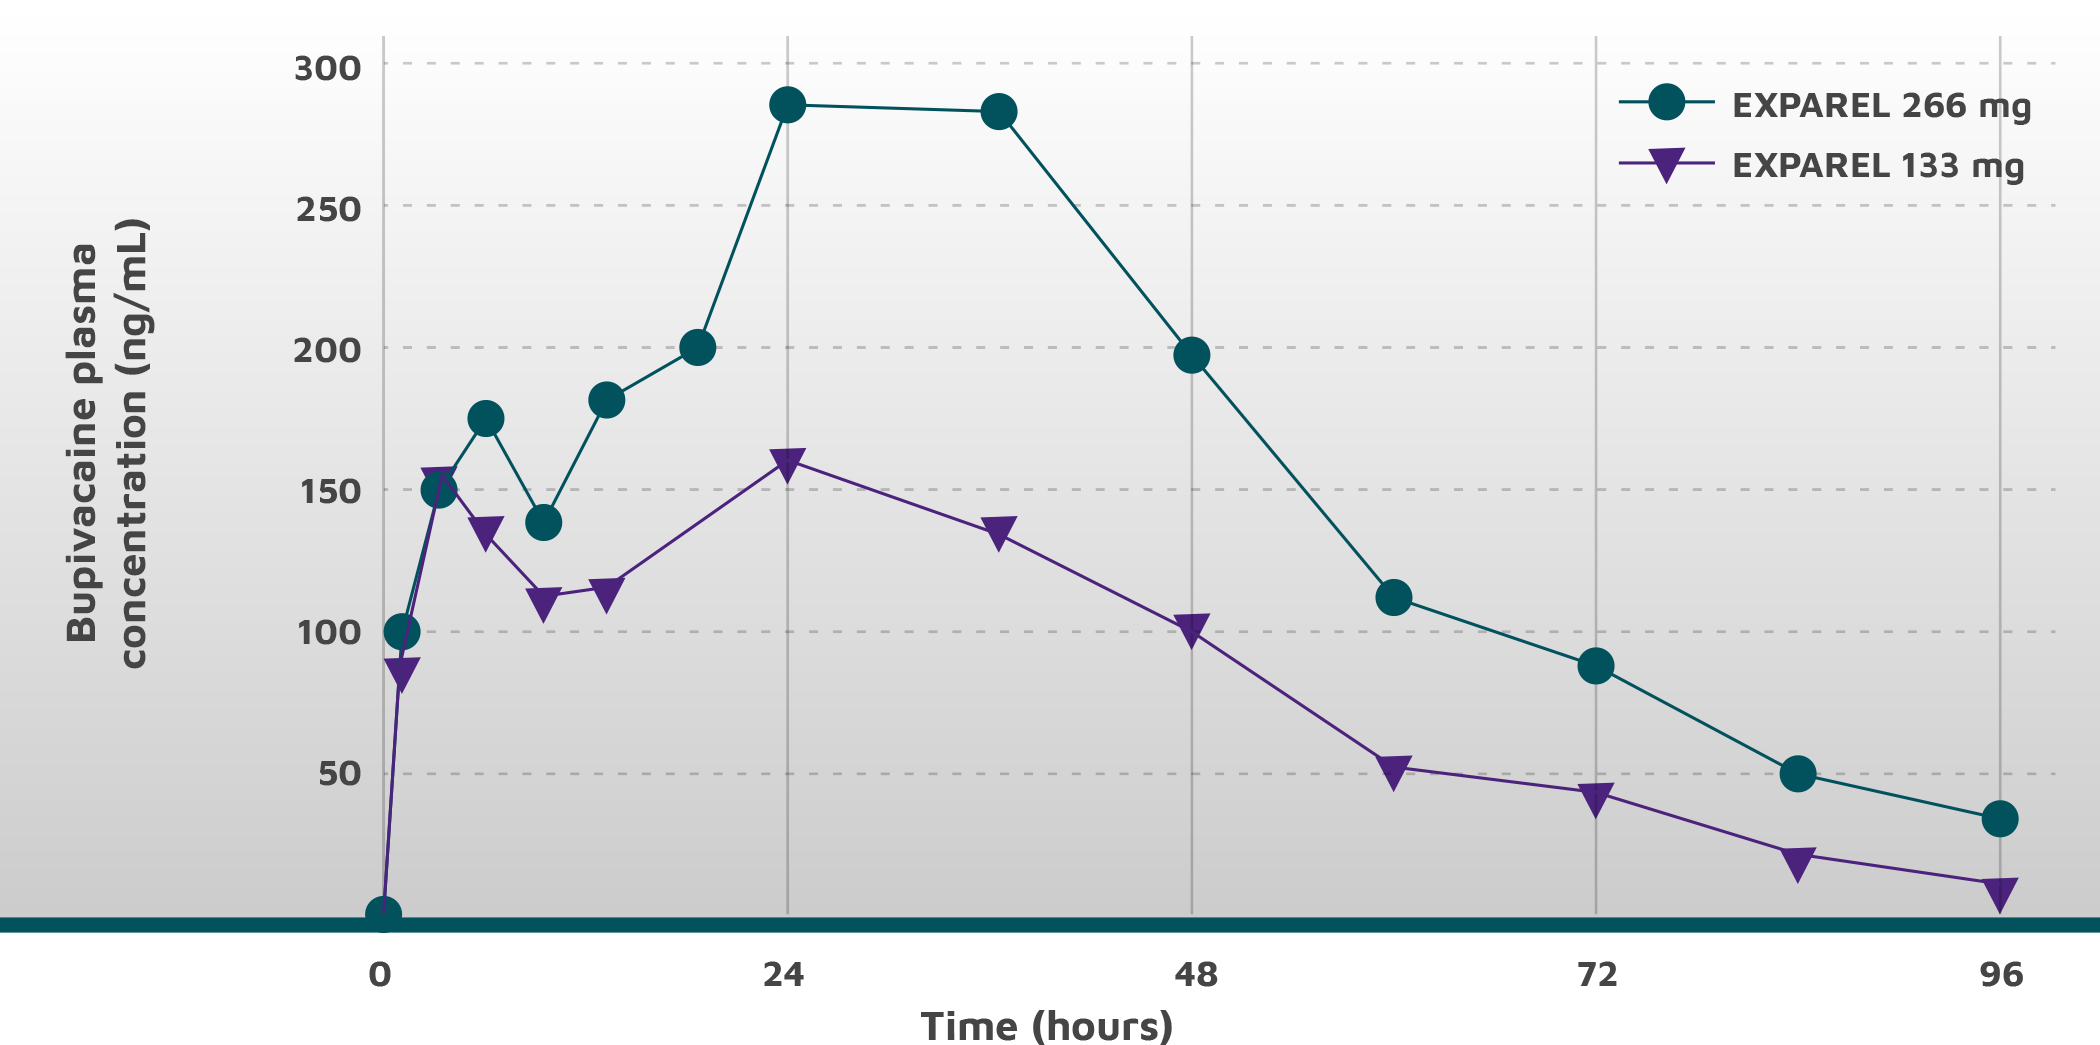 Line graph showing bupivacaine plasma levels being maintained over 96 hours with two doses - 133mg and 266mg